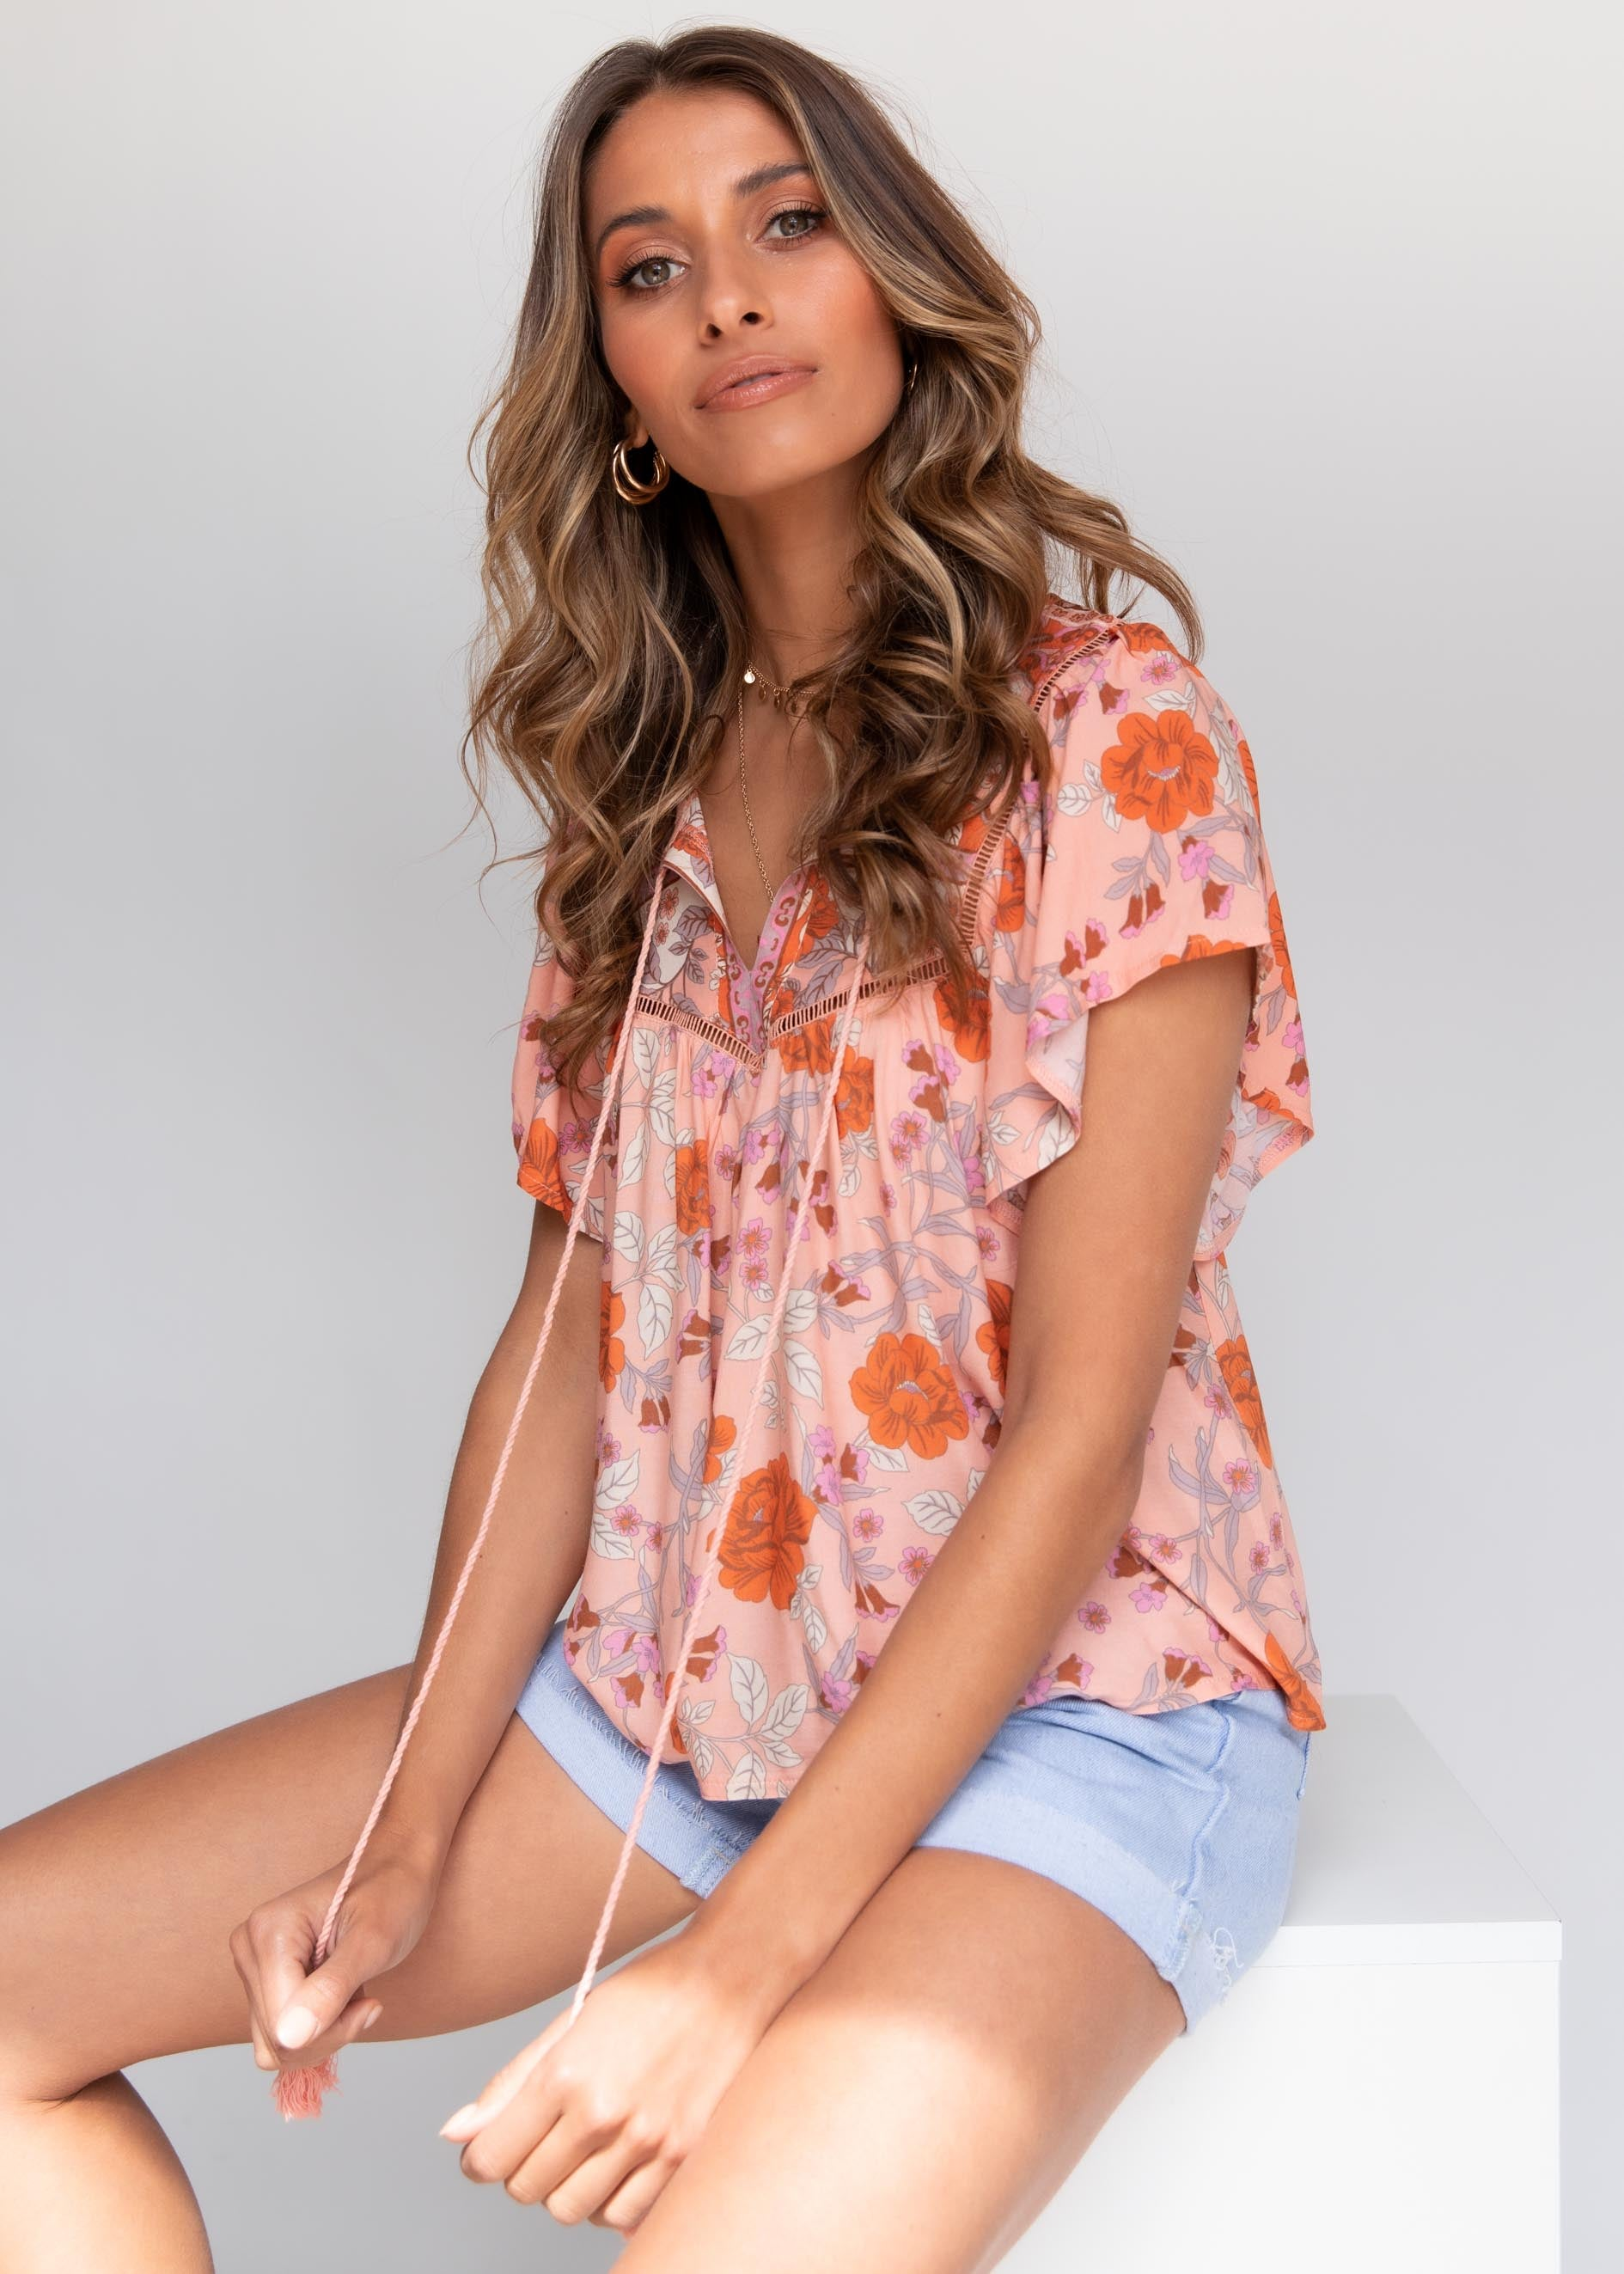 Surrender Blouse - Peach Blossom